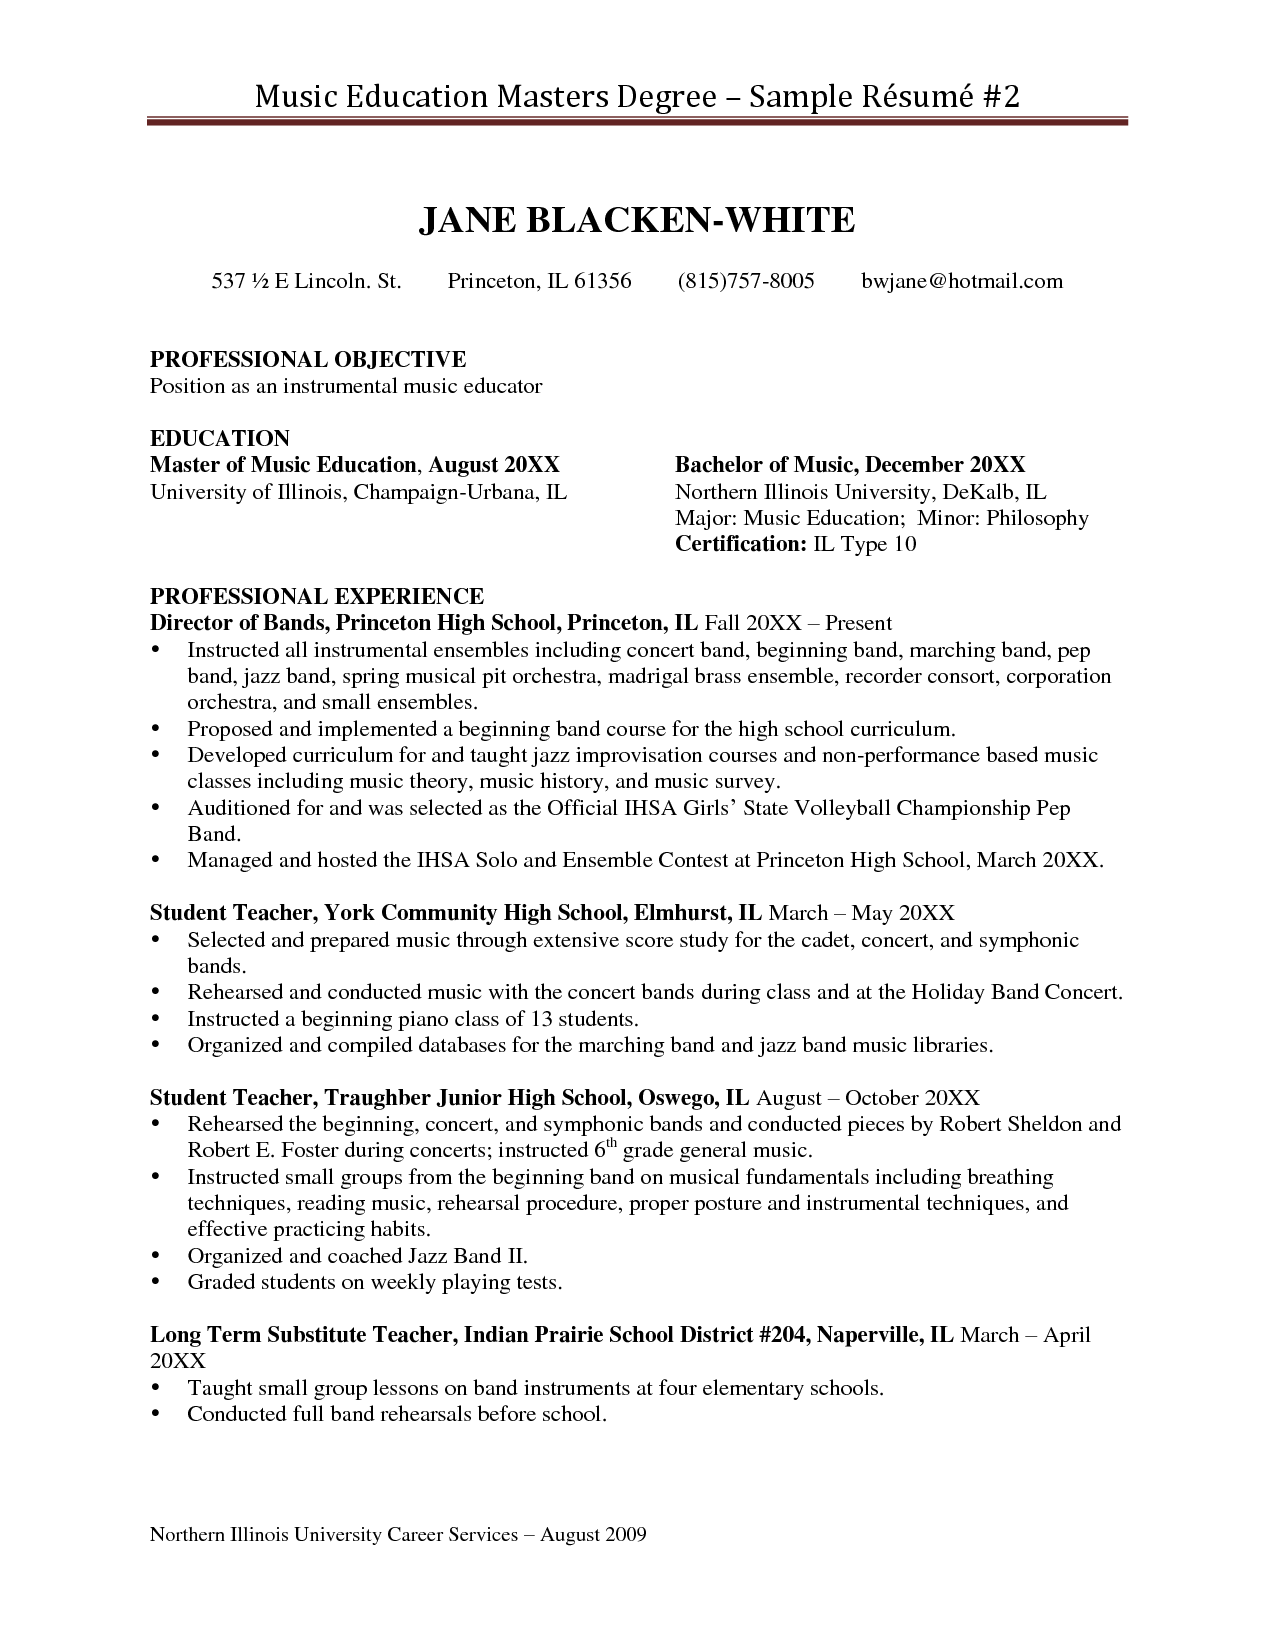 graduate teachers resume example  Google Search  Getting a job  Pinterest  Sample resume